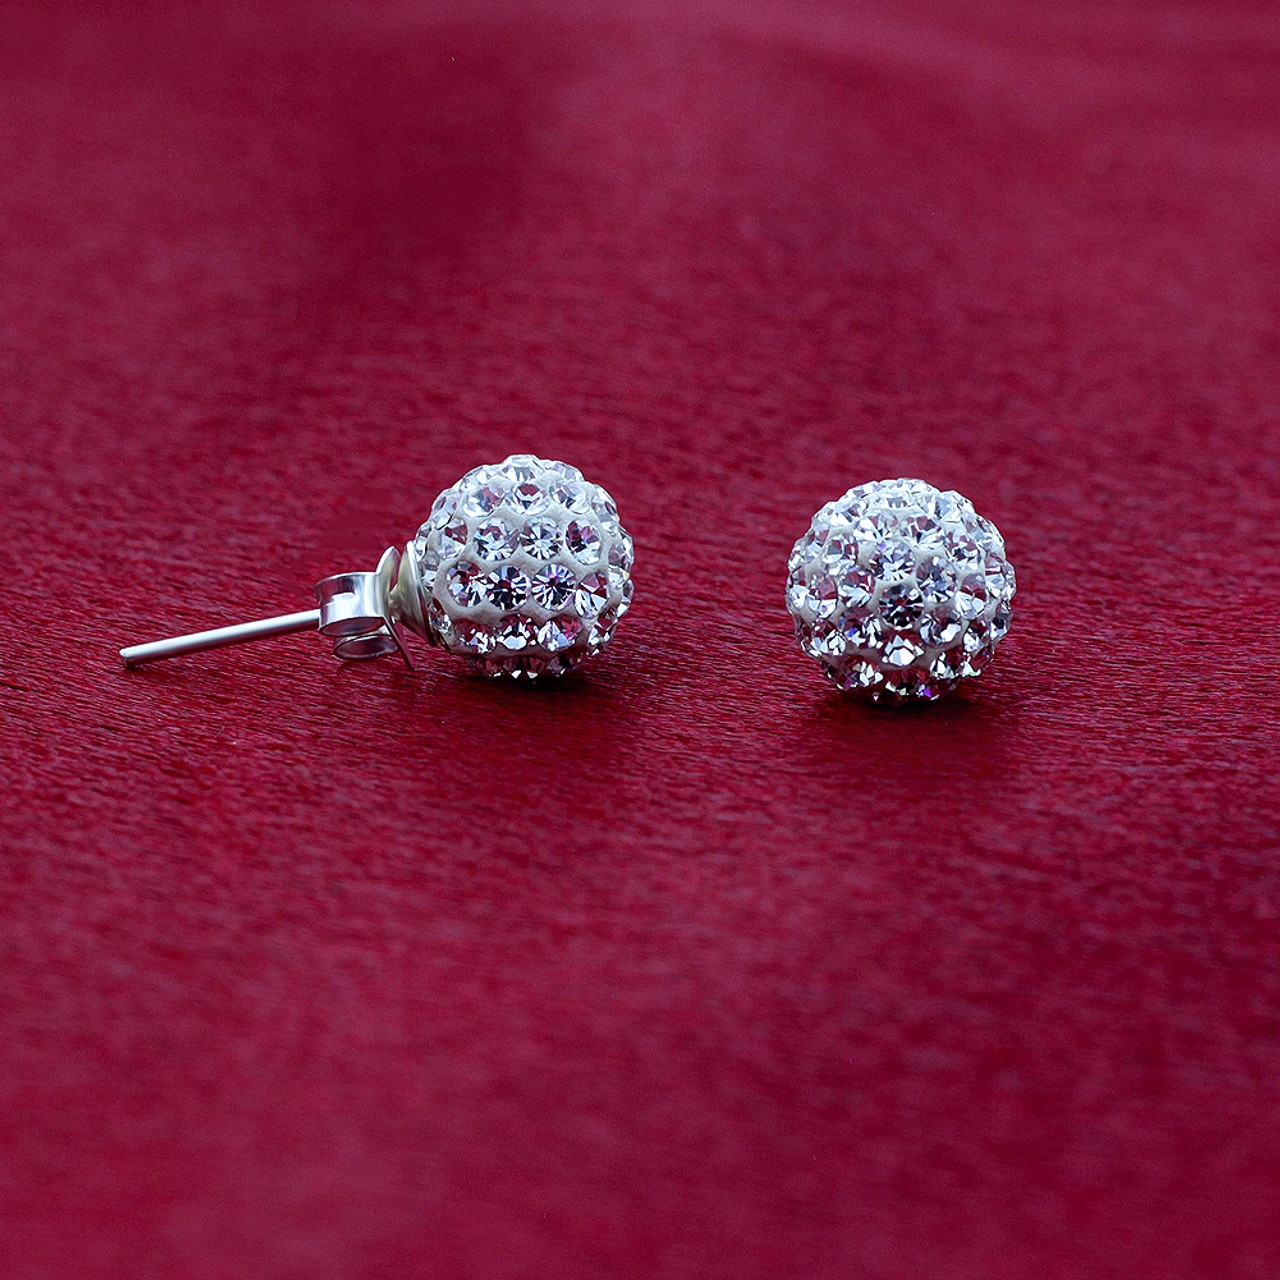 8mm Round Clear Crystal Ball Stud Earrings